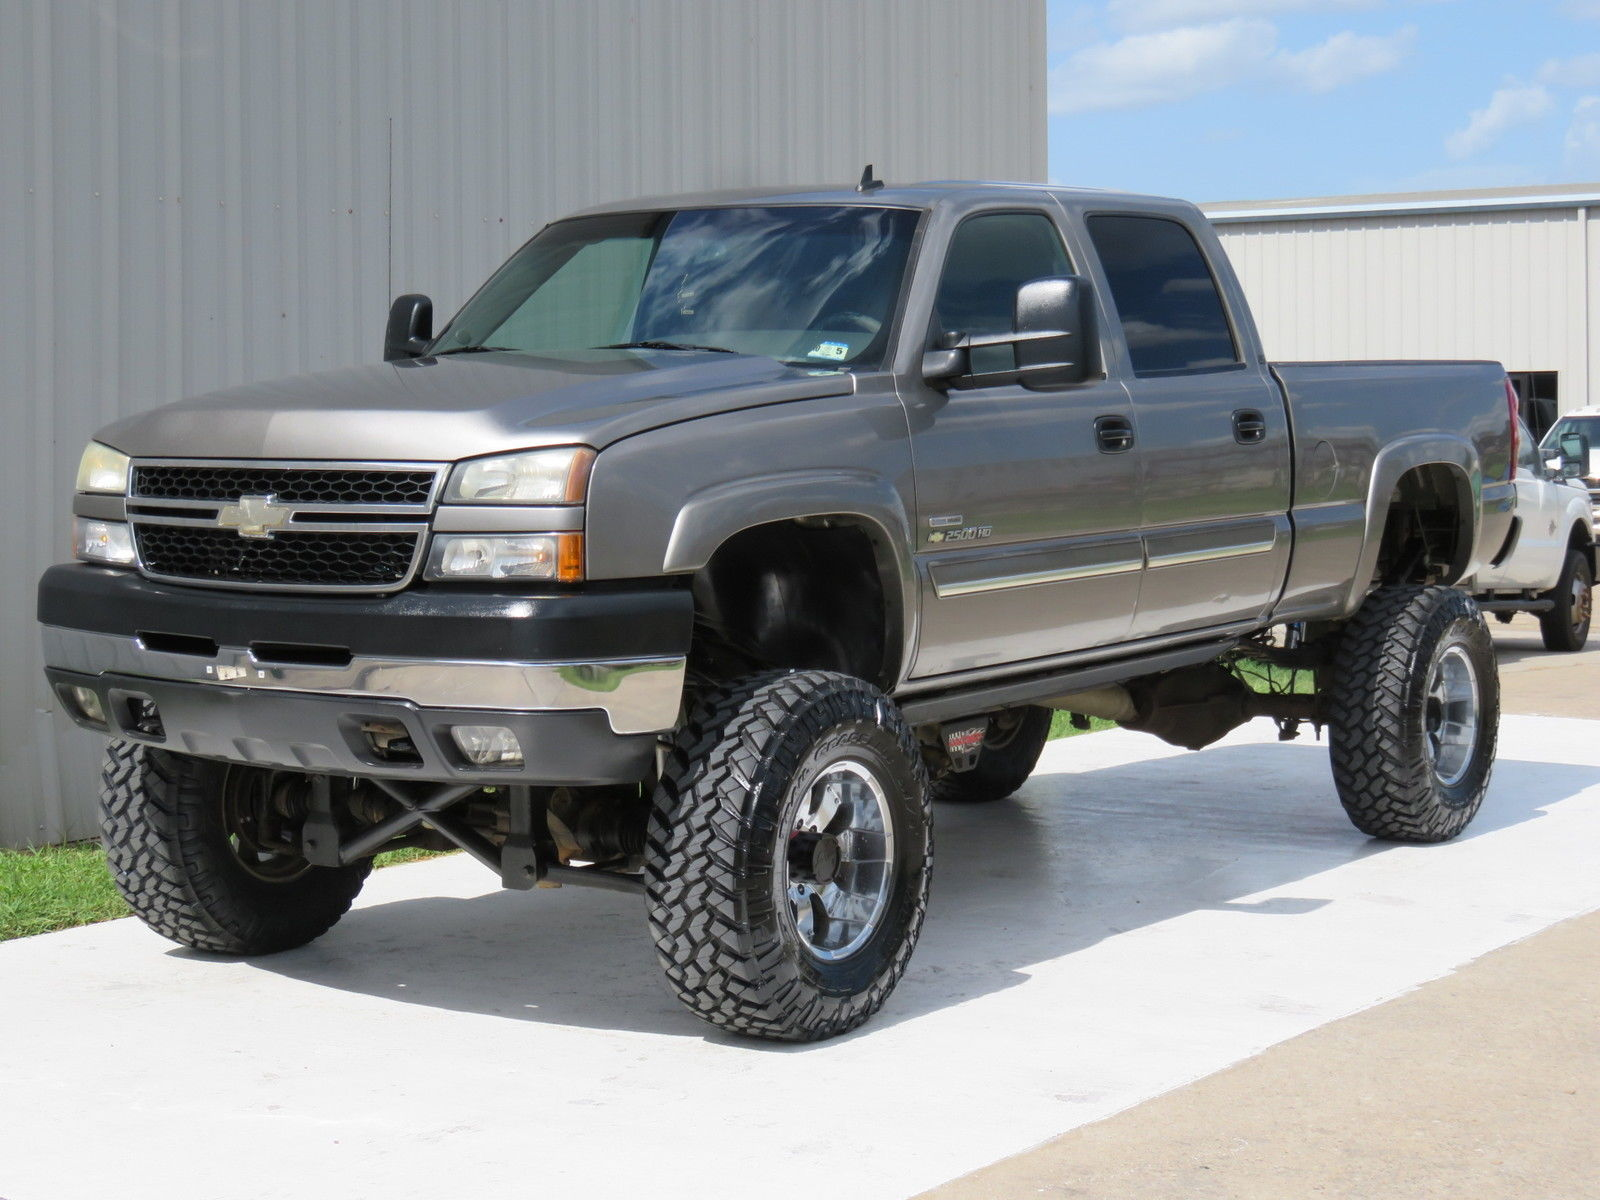 Chevy 2500 Diesel For Sale New Car Reviews Duramax Fuel Filter 2007 Chevrolet Silverado 44